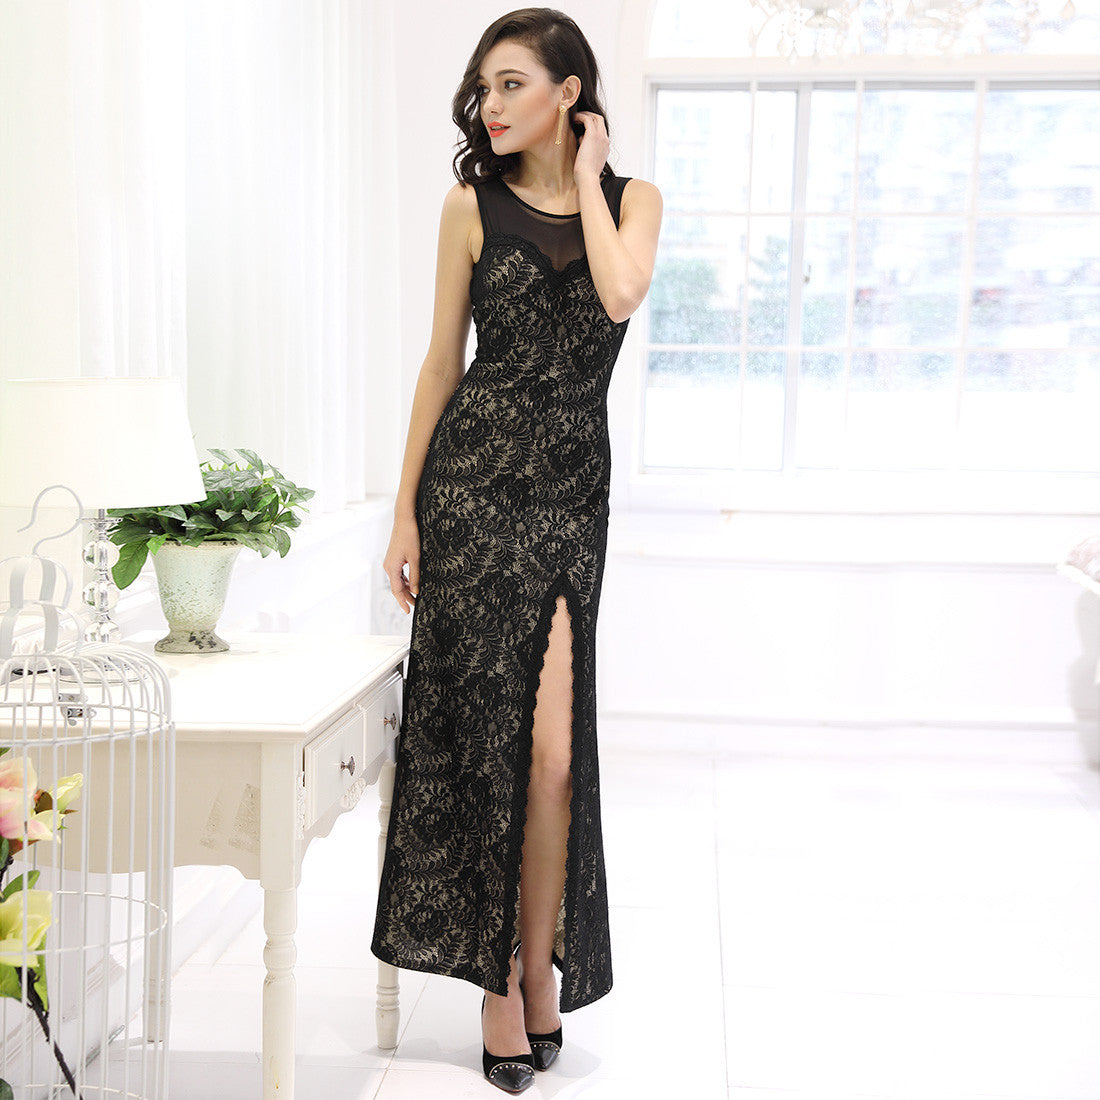 Black Lace Split Side Evening Formal Dress - Rocky Mt. Discount Outlet